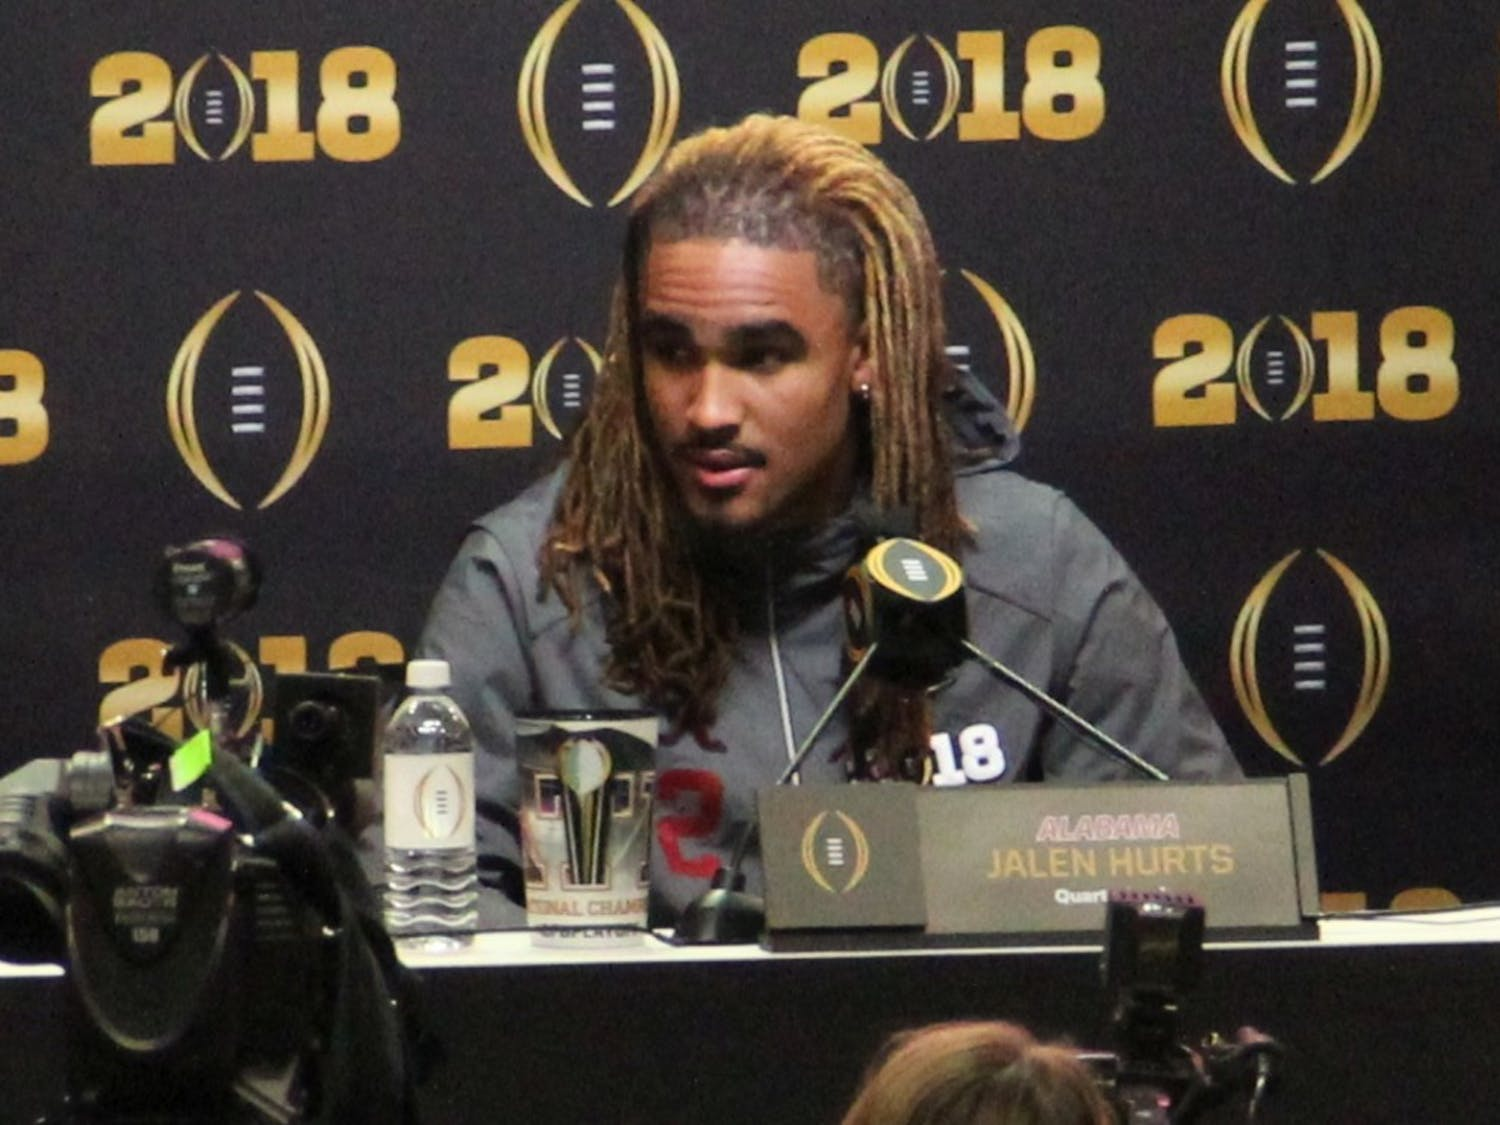 After the Badgers' struggles in the passing game last season, it would be a good idea to find a graduate transfer quarterback — potentially someonelike Alabama quarterbackJalen Hurts.